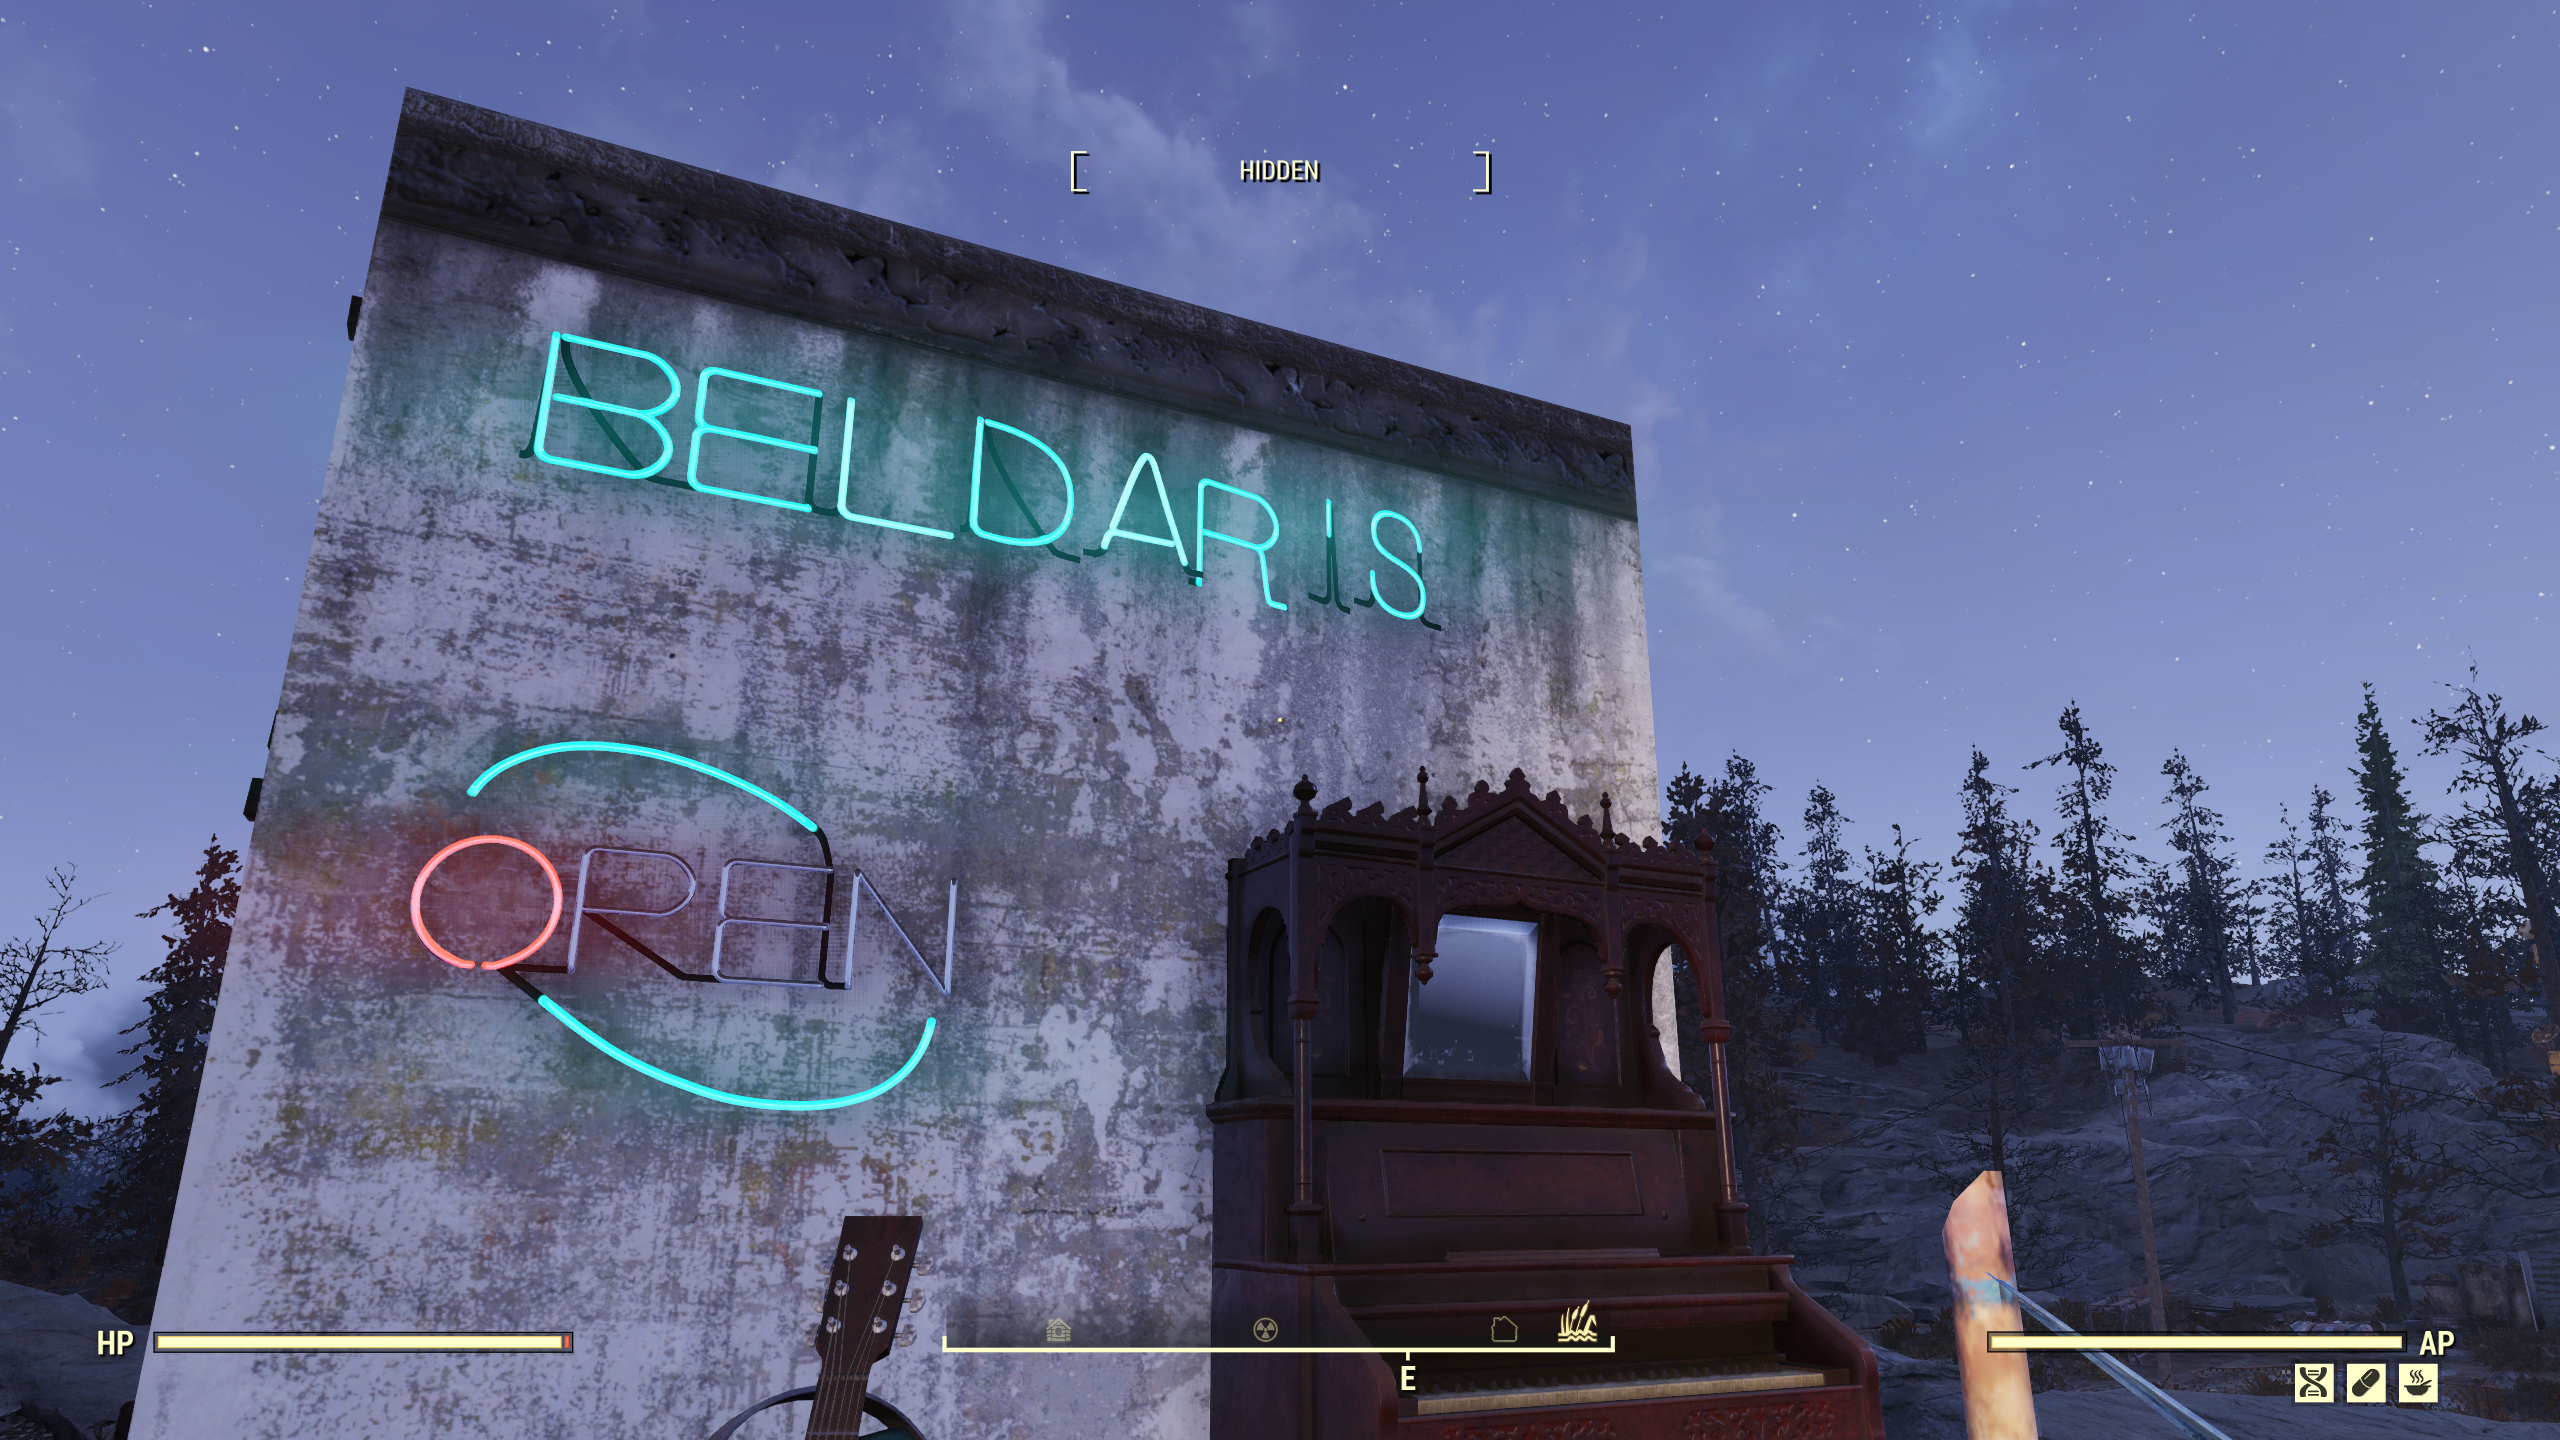 Bug Neon Letters Placement Issues With Letters Skewed Out Of Plane With Wall On Which They Re Mounted Fo76